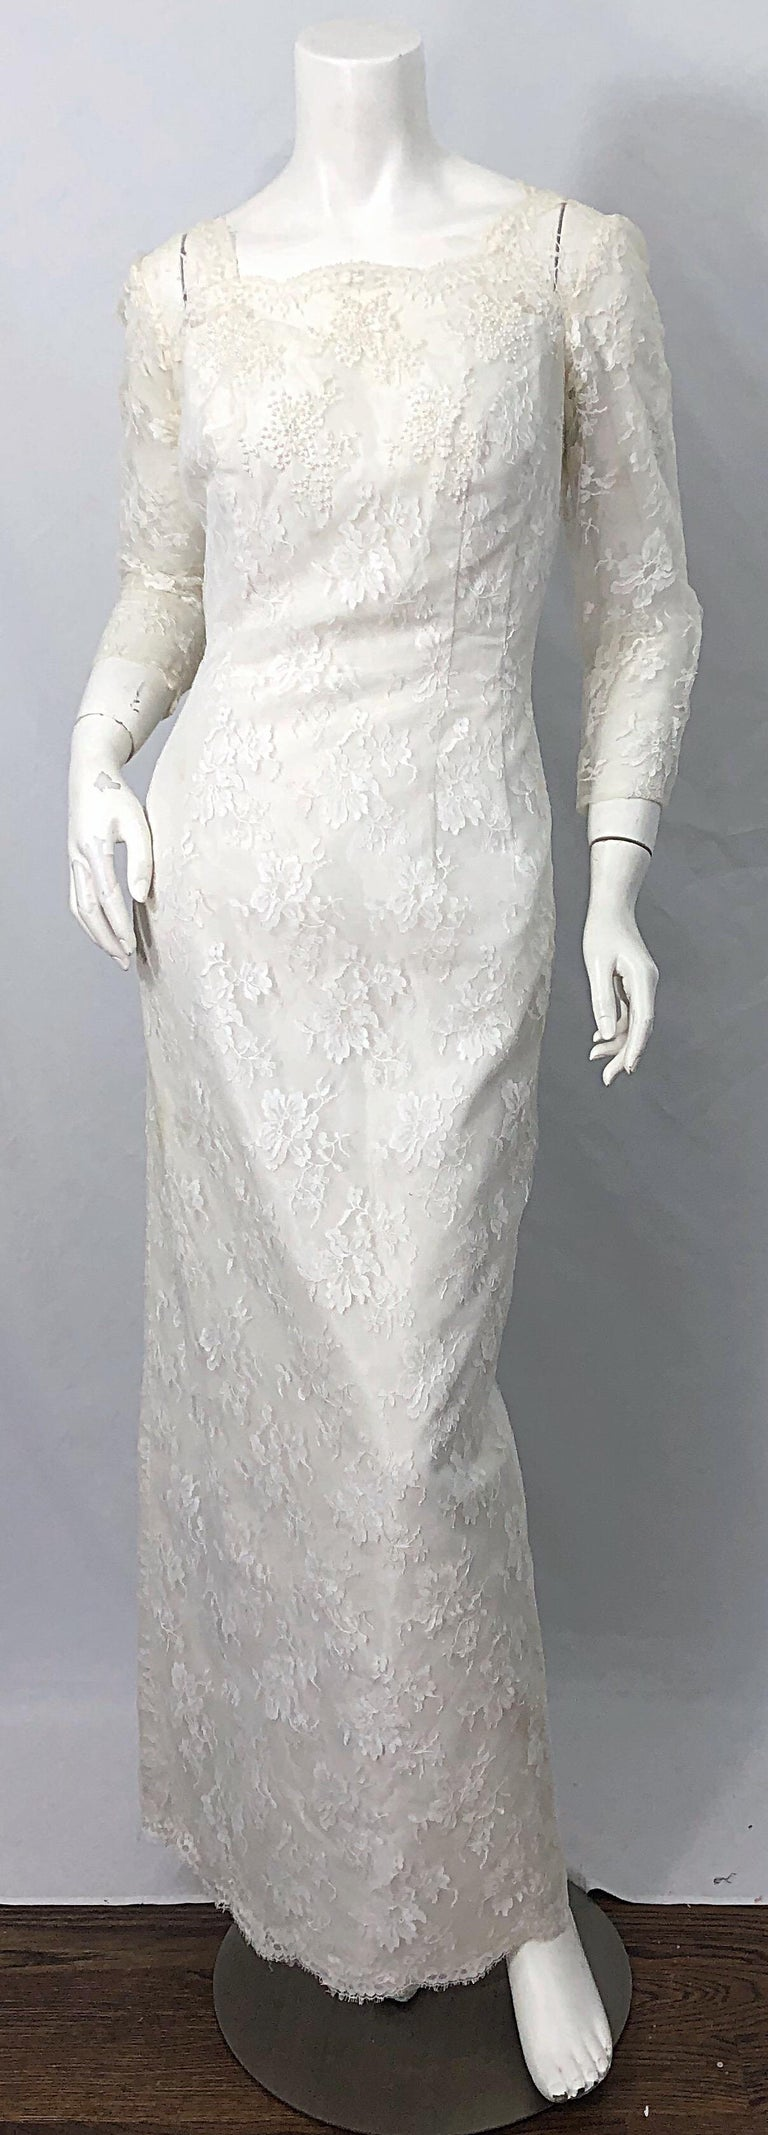 Beautiful early 60s AN ORIGINAL BY CONSTANTINO white beaded, sequin, pearl long sleeve silk lace wedding dress ! Couture quality, with so much attention to details. Silk taffeta with white French lace overlay. Thousands of hand-sewn beads and